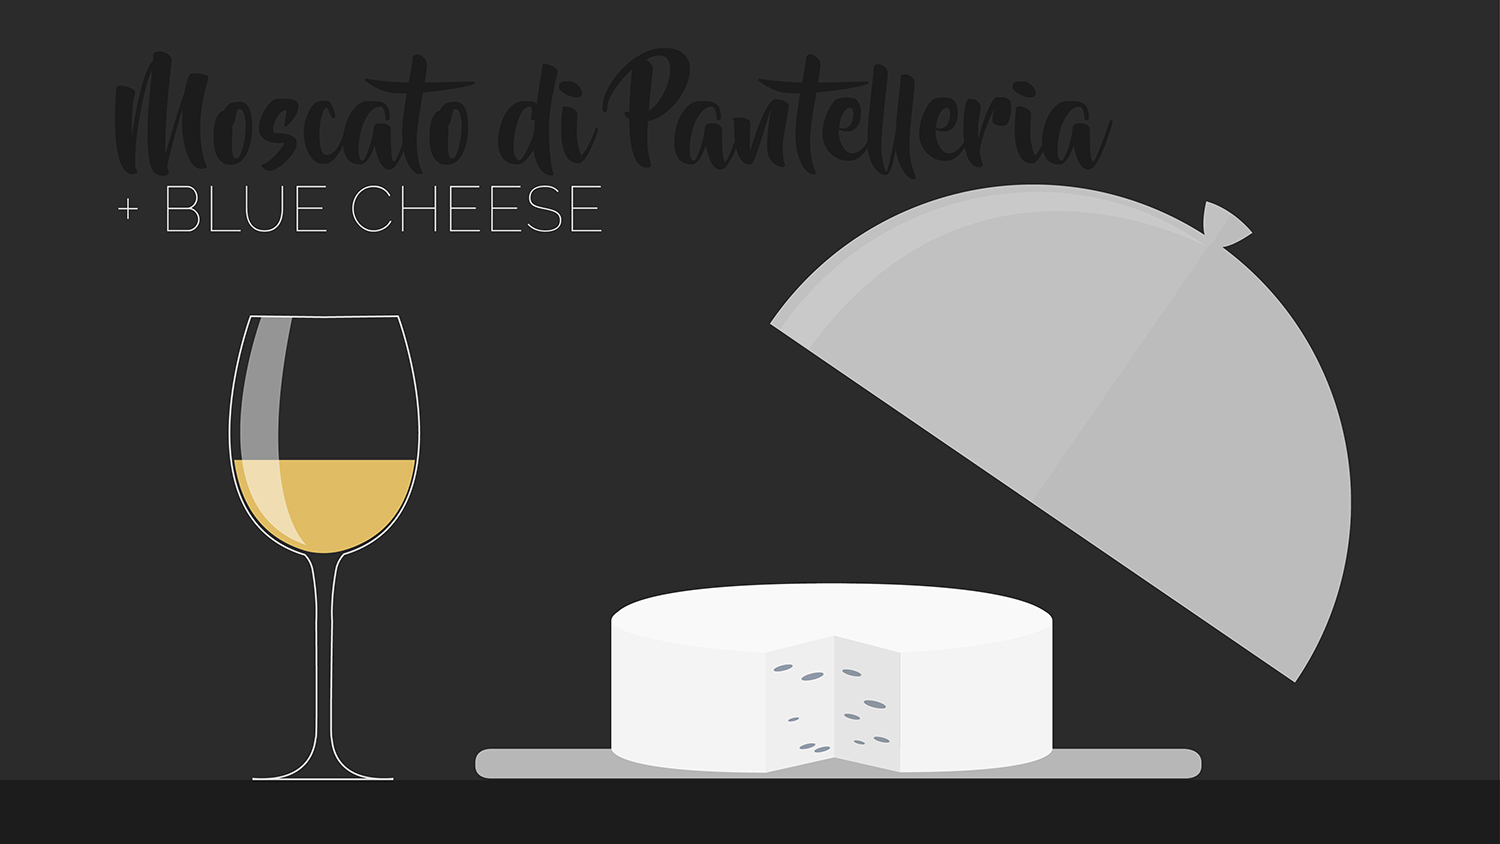 moscato wine goes well with blue cheese wine pairings for strong and soft cheeses